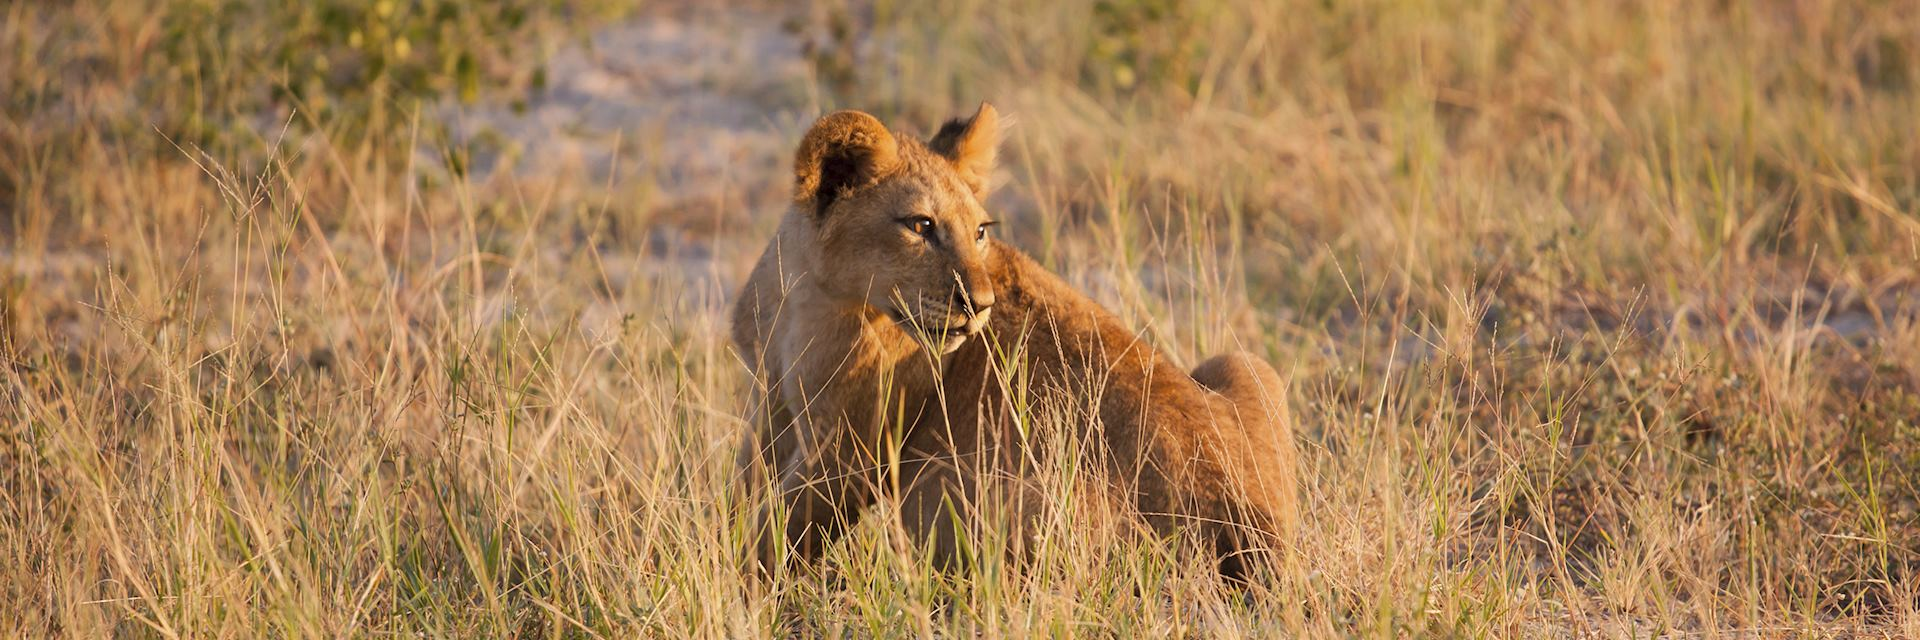 Lion cub, South Luangwa National Park